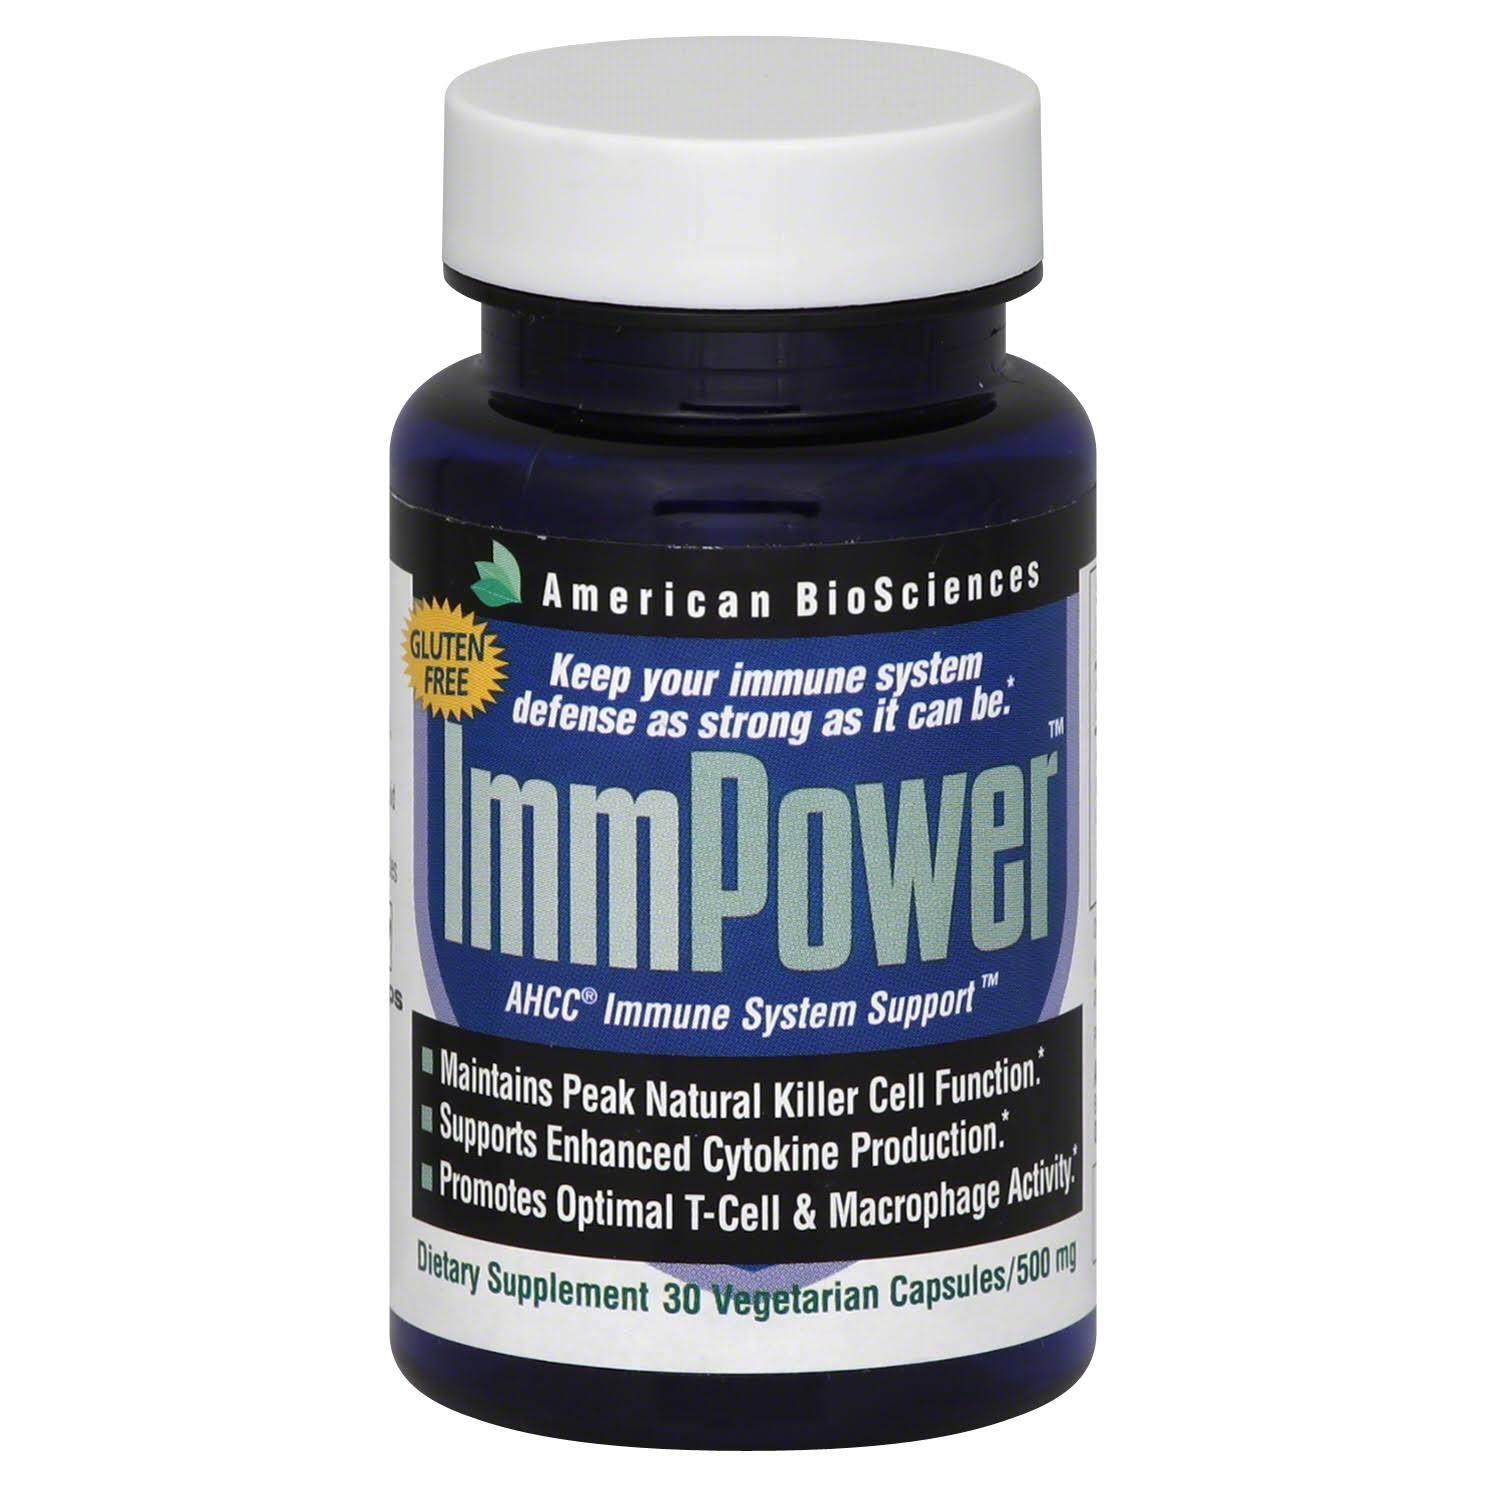 American Biosciences ImmPower Ahcc Immune System Support Supplement - 500mg, 30ct